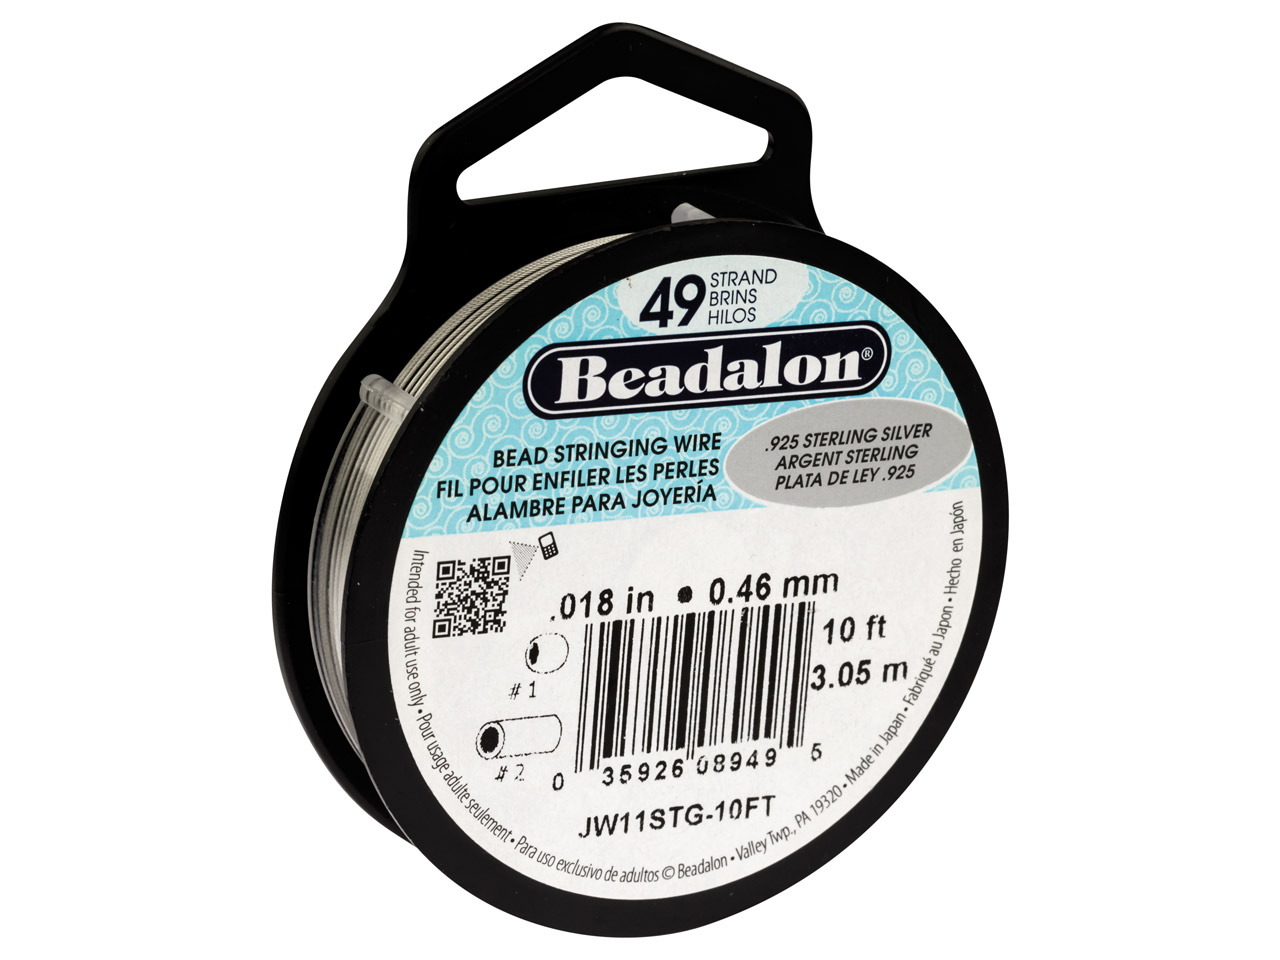 Beadalon Sterling. Hilo De Plata De49 Hebras 0.46mm X 3m